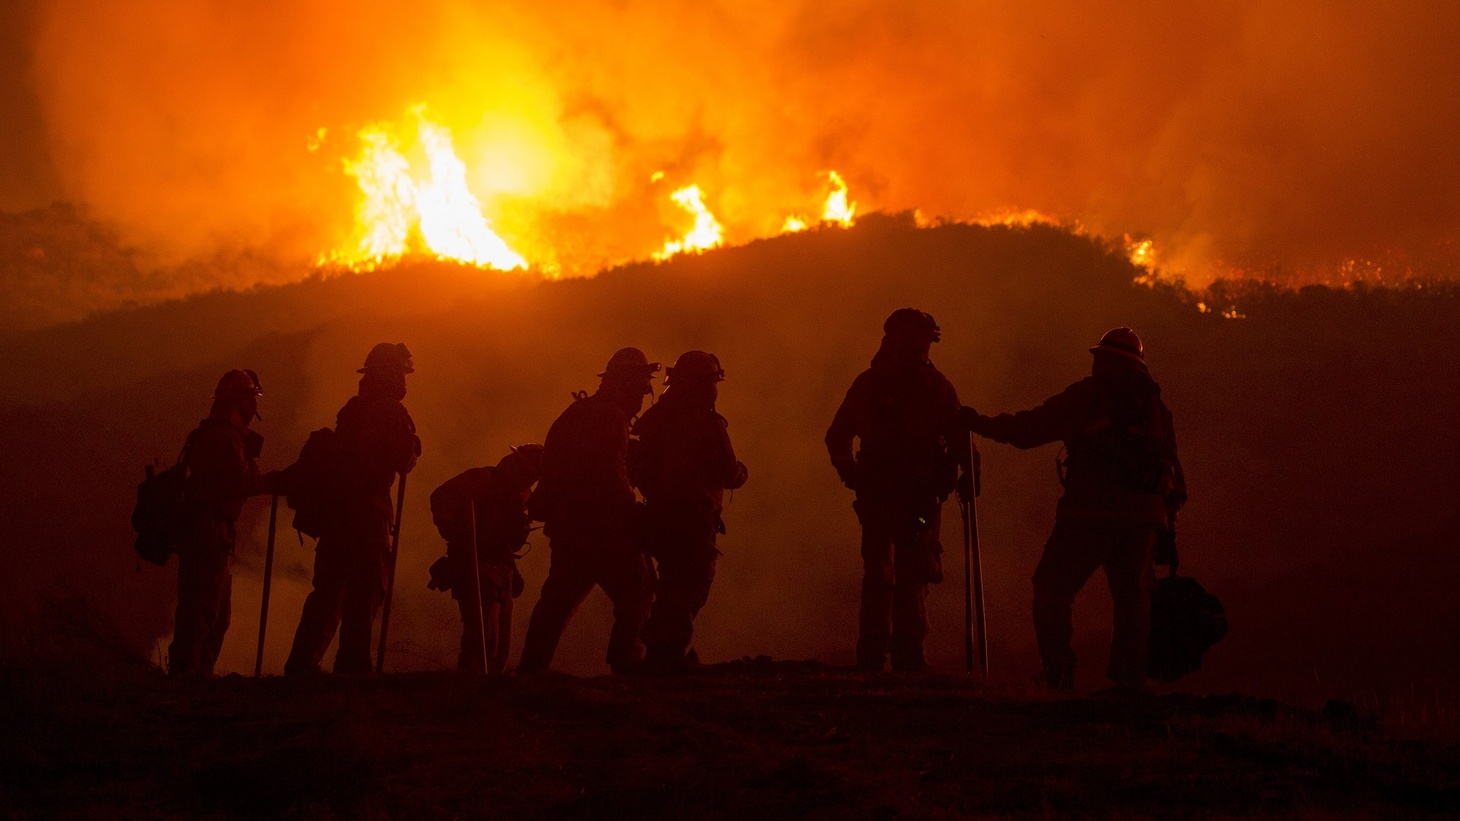 Governor Gavin Newsom has declared a state of emergency for Napa, Sonoma and Shasta counties in response to the fires that recently exploded.